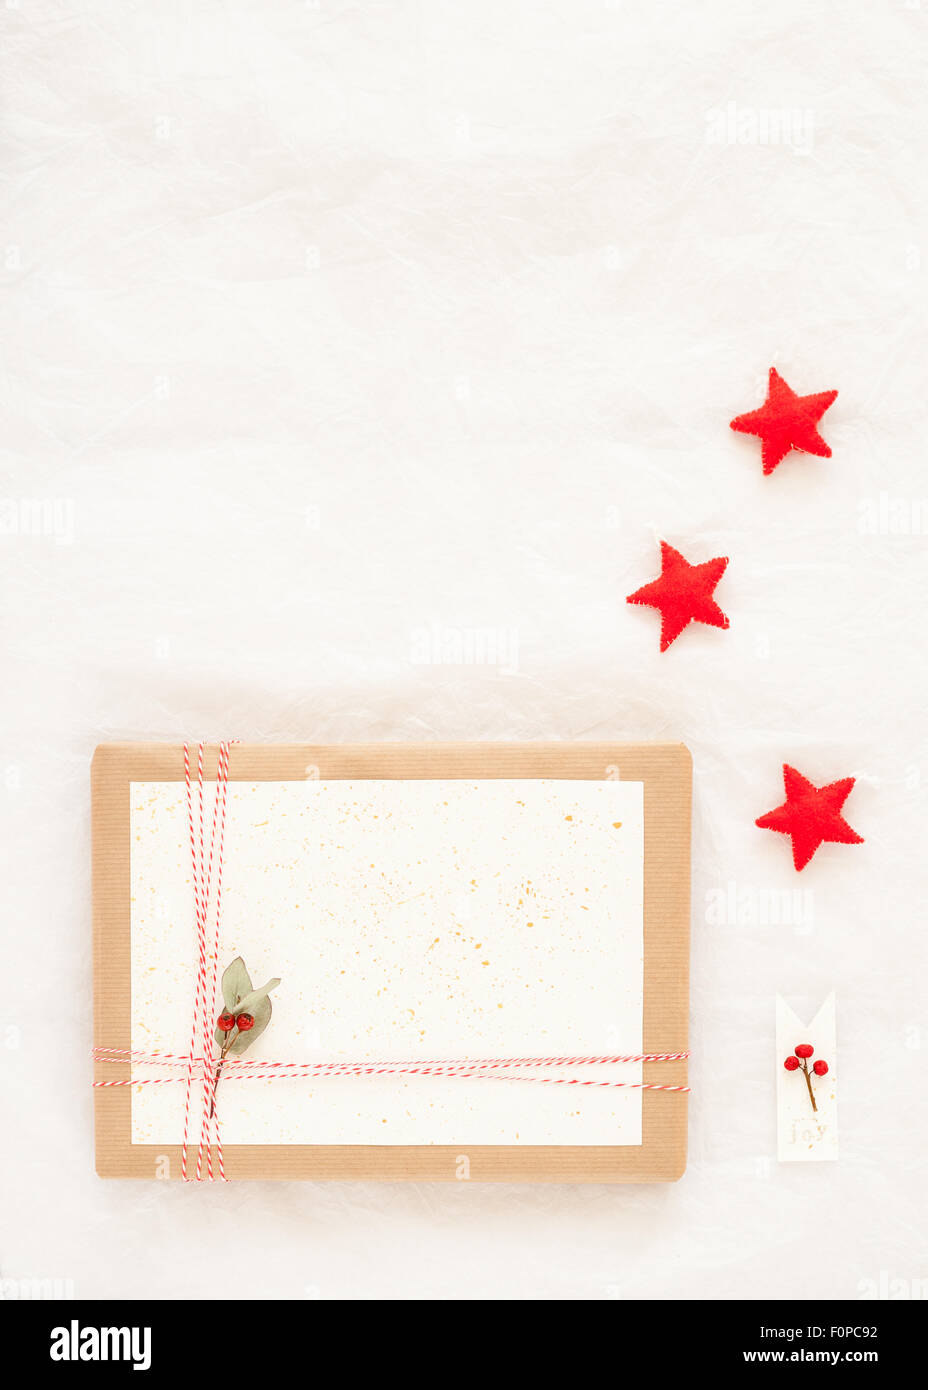 gift wrapped with brown paper, red and white baker's twine white paper splattered with gold paint decorated - Stock Image